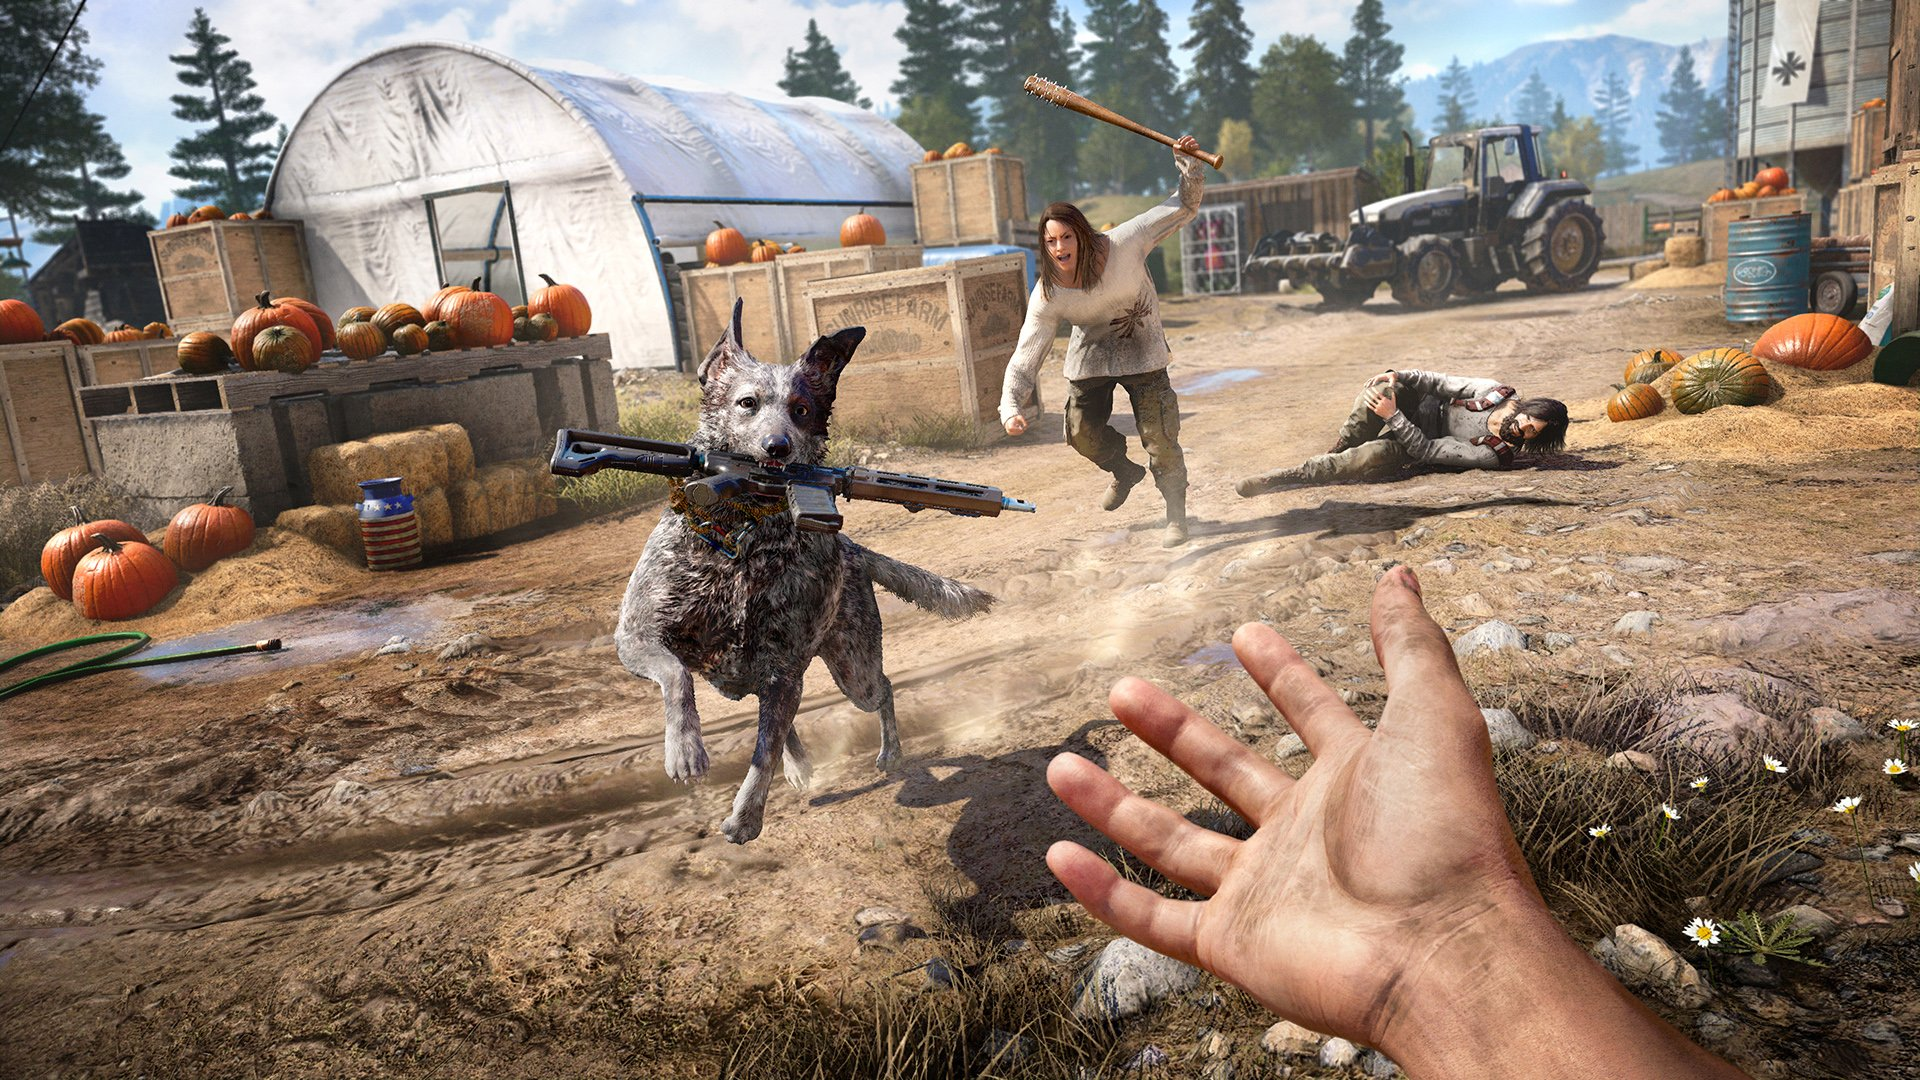 Far Cry 5: All Animal Companions Guide | Where To Get The Dog, Bear & Lion